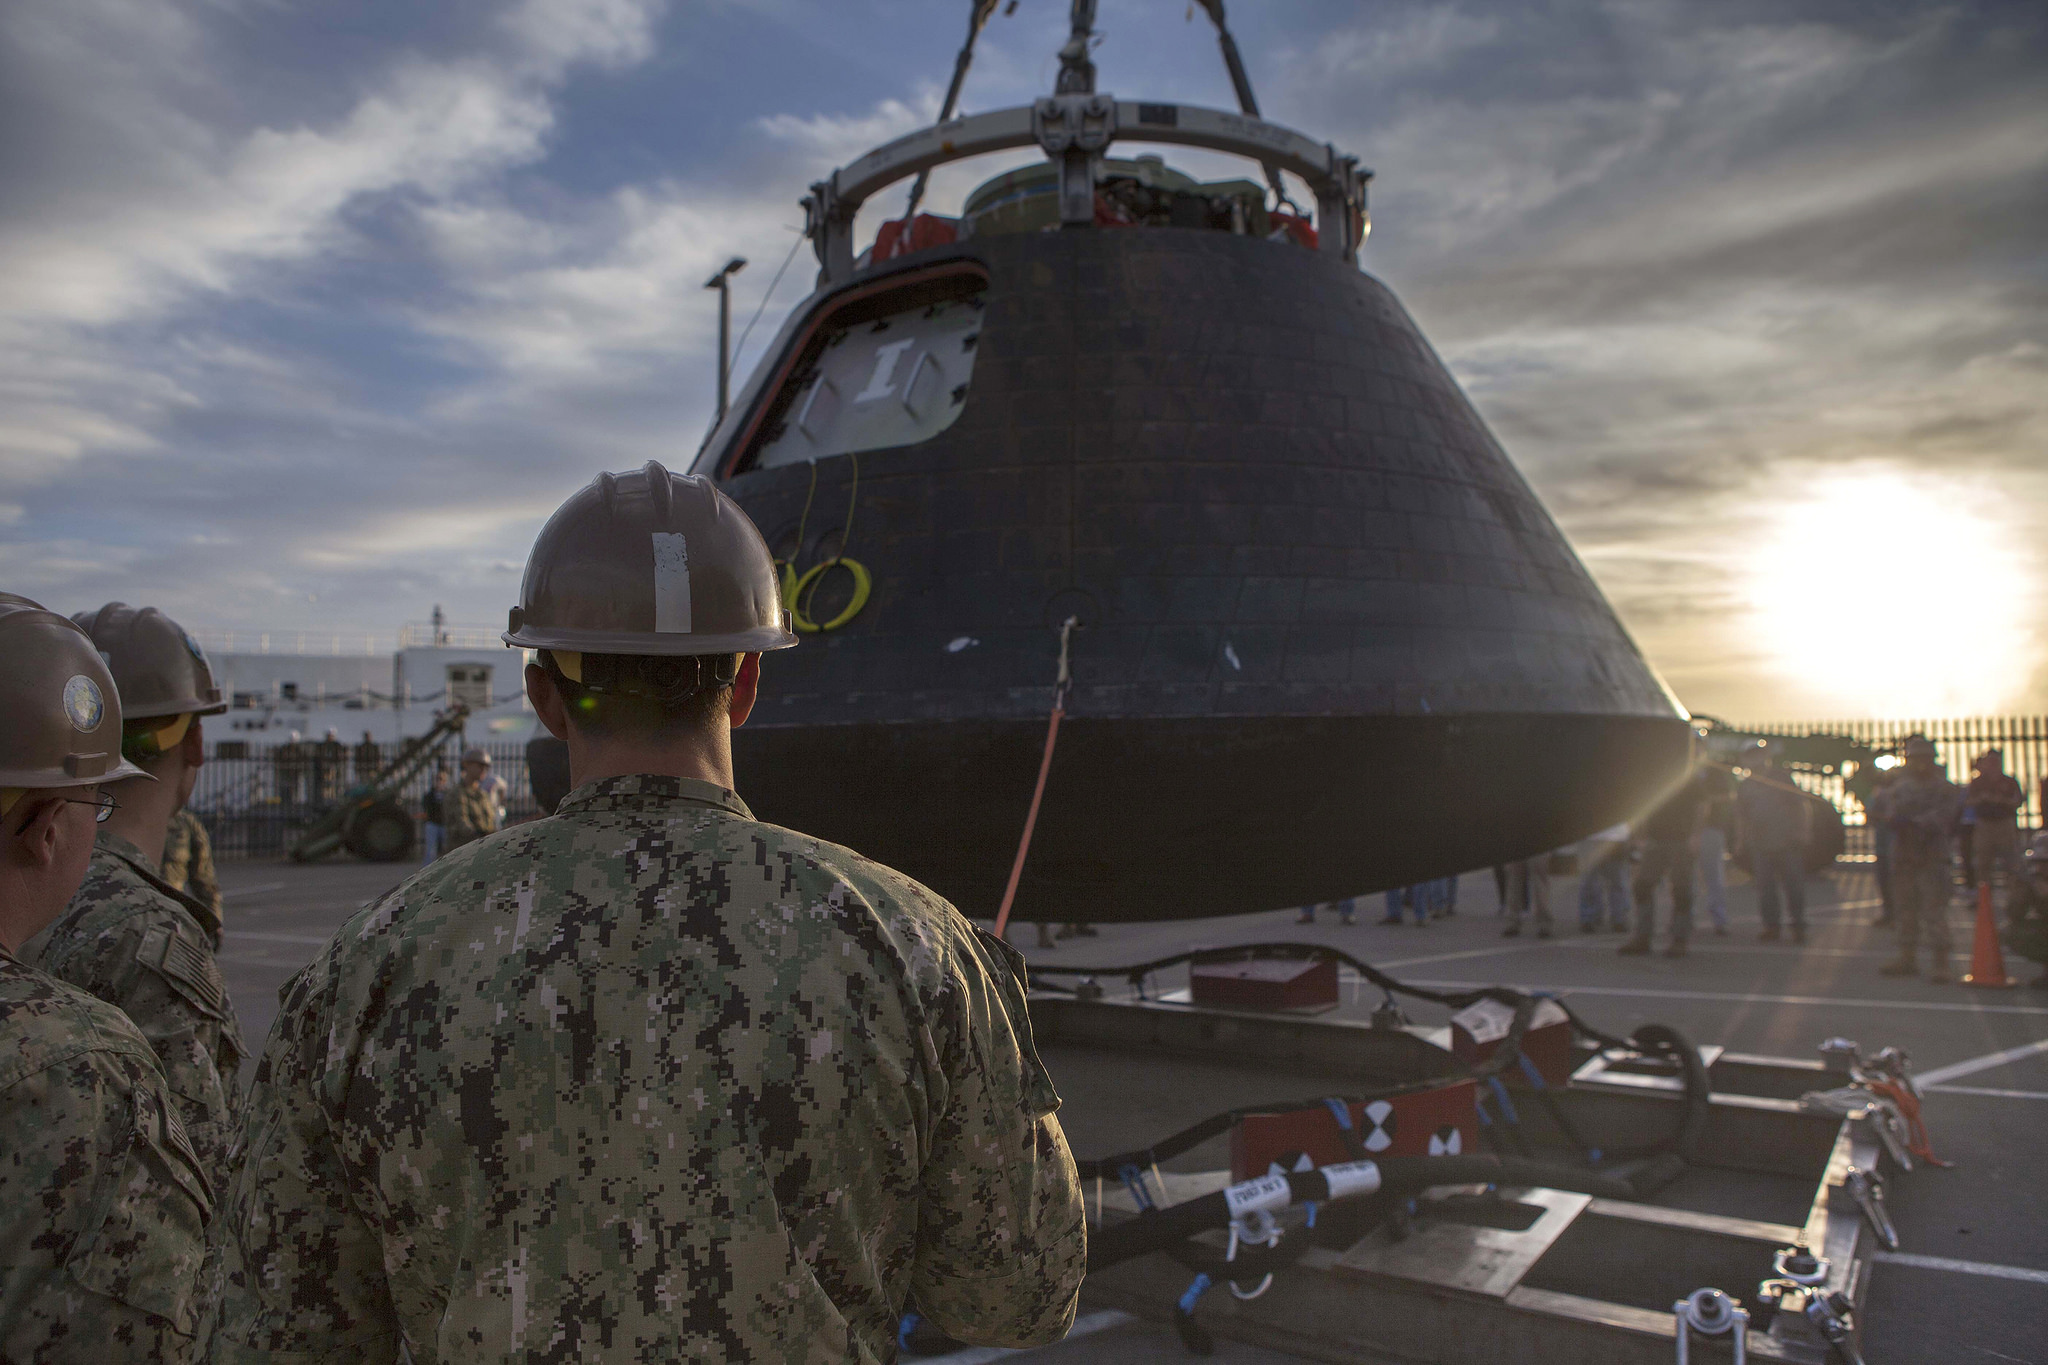 The Orion spacecraft at Naval Base San Diego before its shipment back to Florida. Credit: NASA/Cory Huston